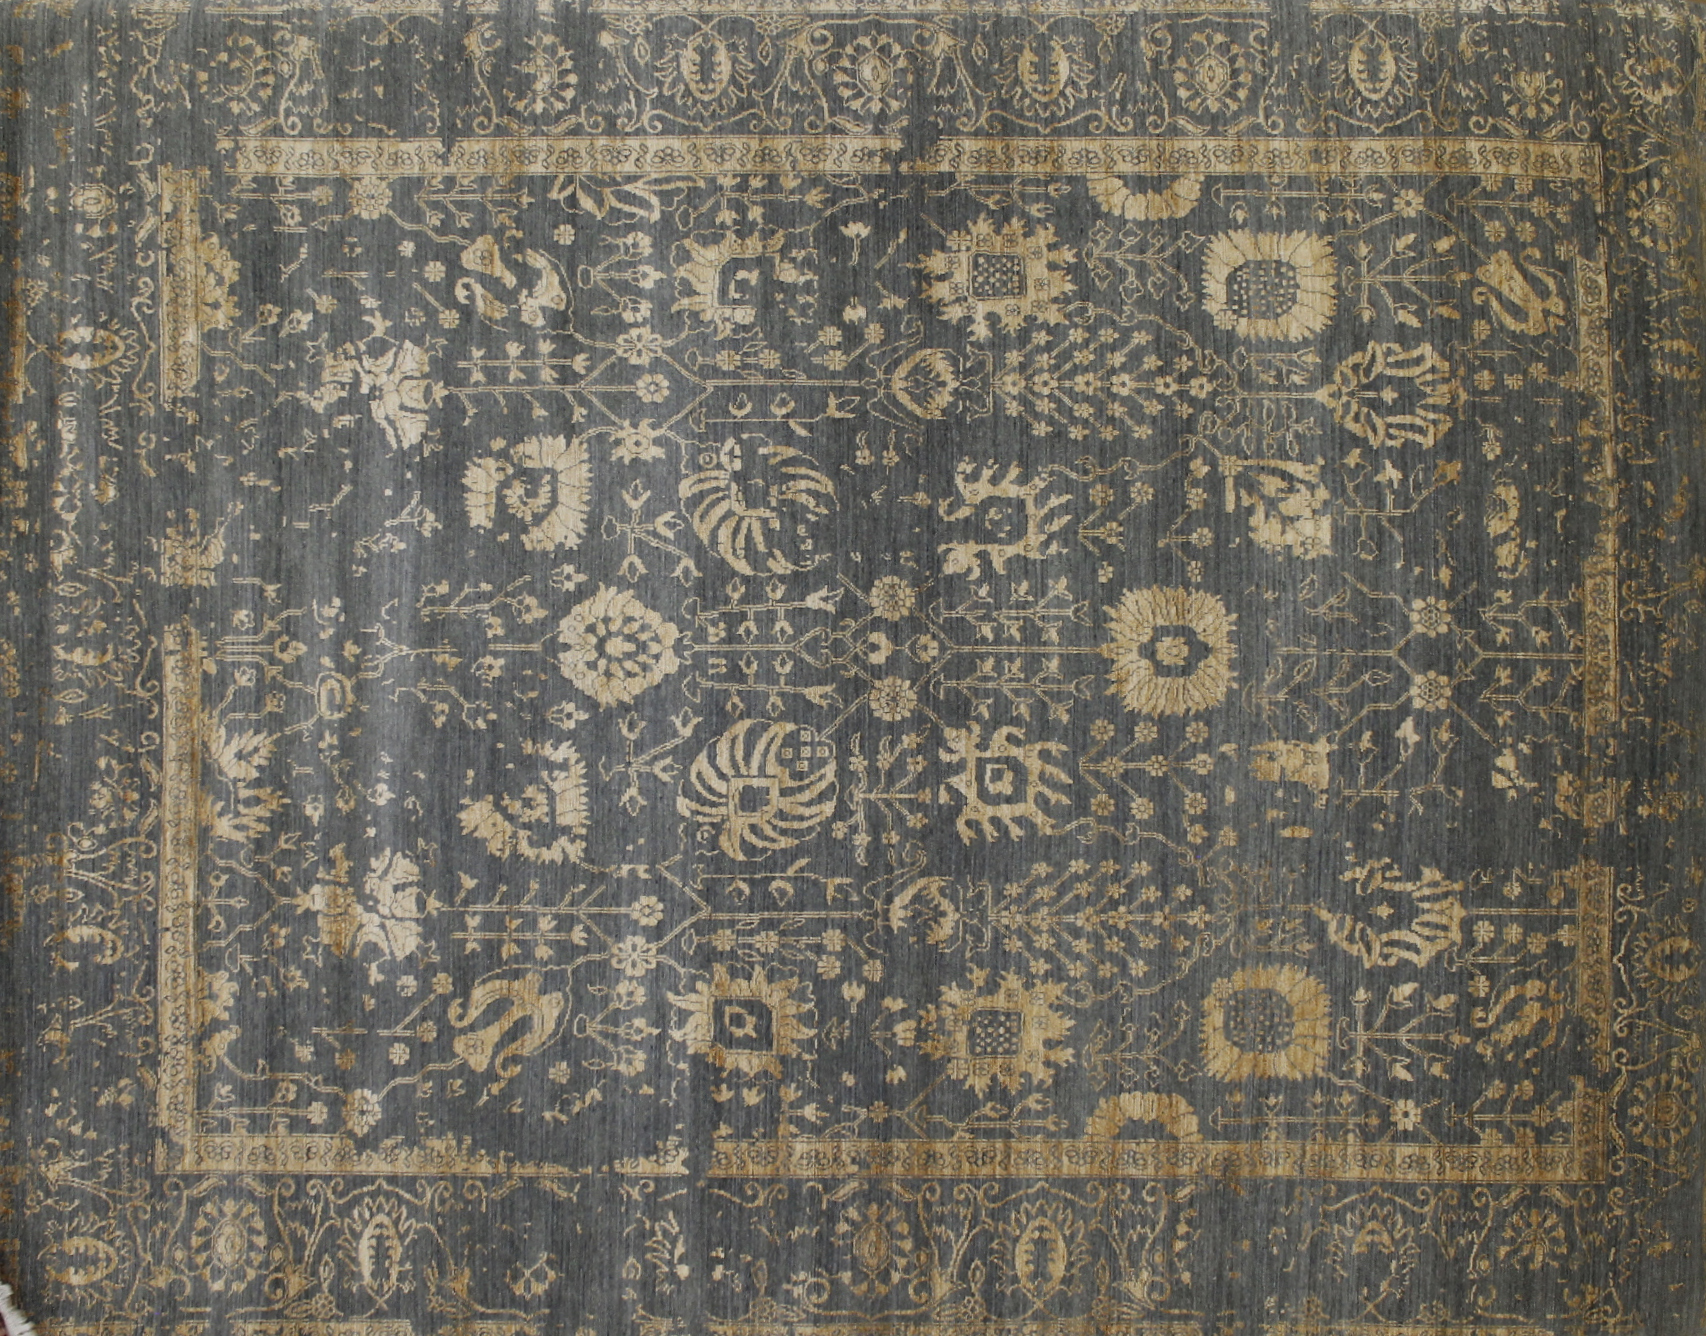 8x10 Contemporary Hand Knotted Wool Area Rug - MR022385